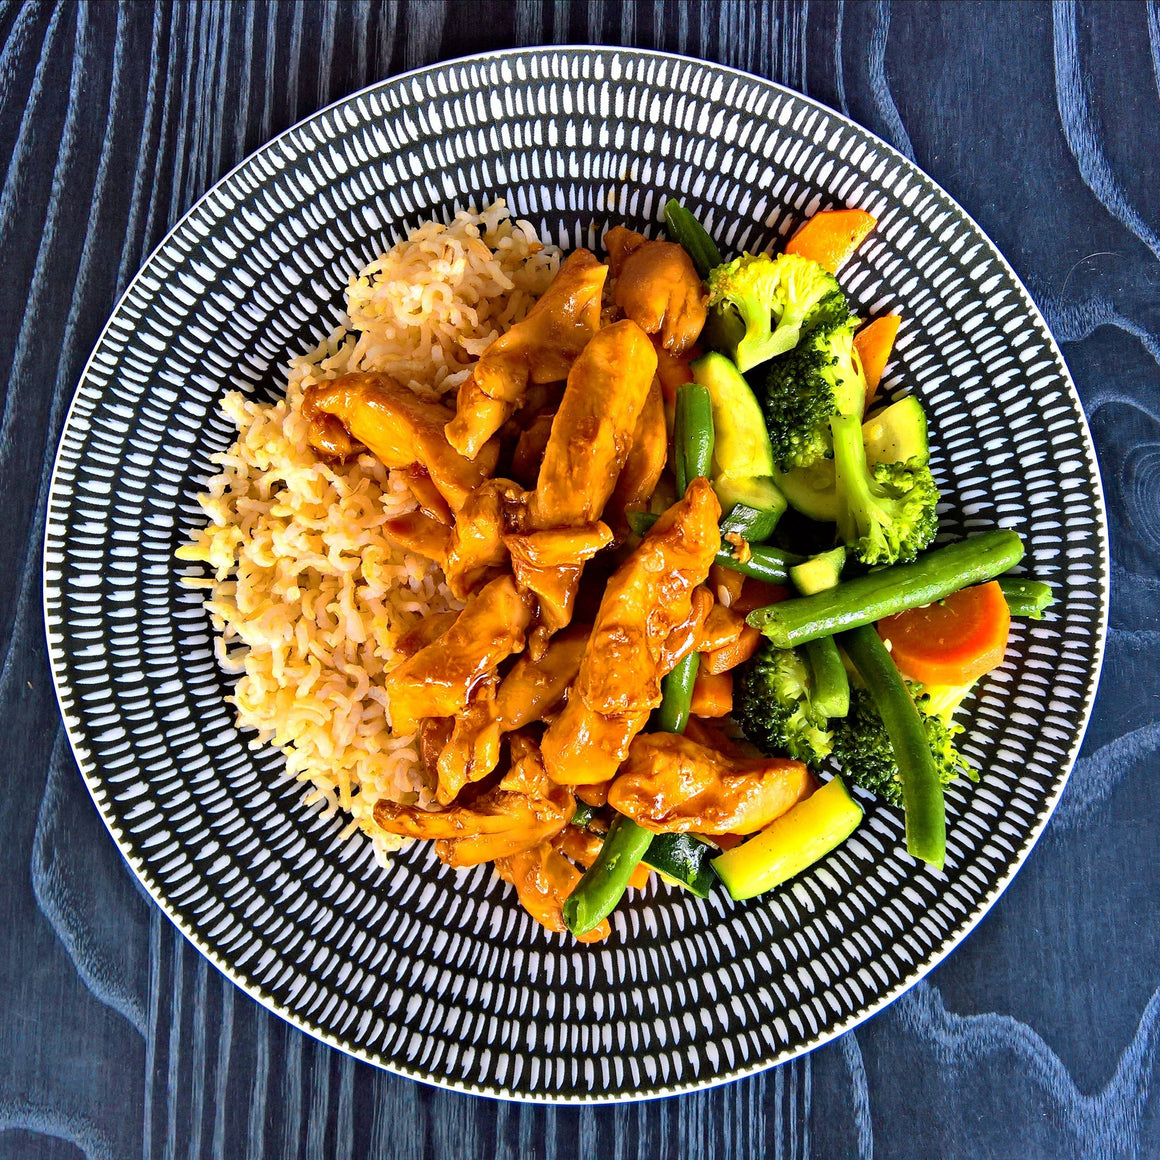 Teriyaki Chicken, Steamed Veggies & Brown Rice - 300g - Foddies Low FODMAP